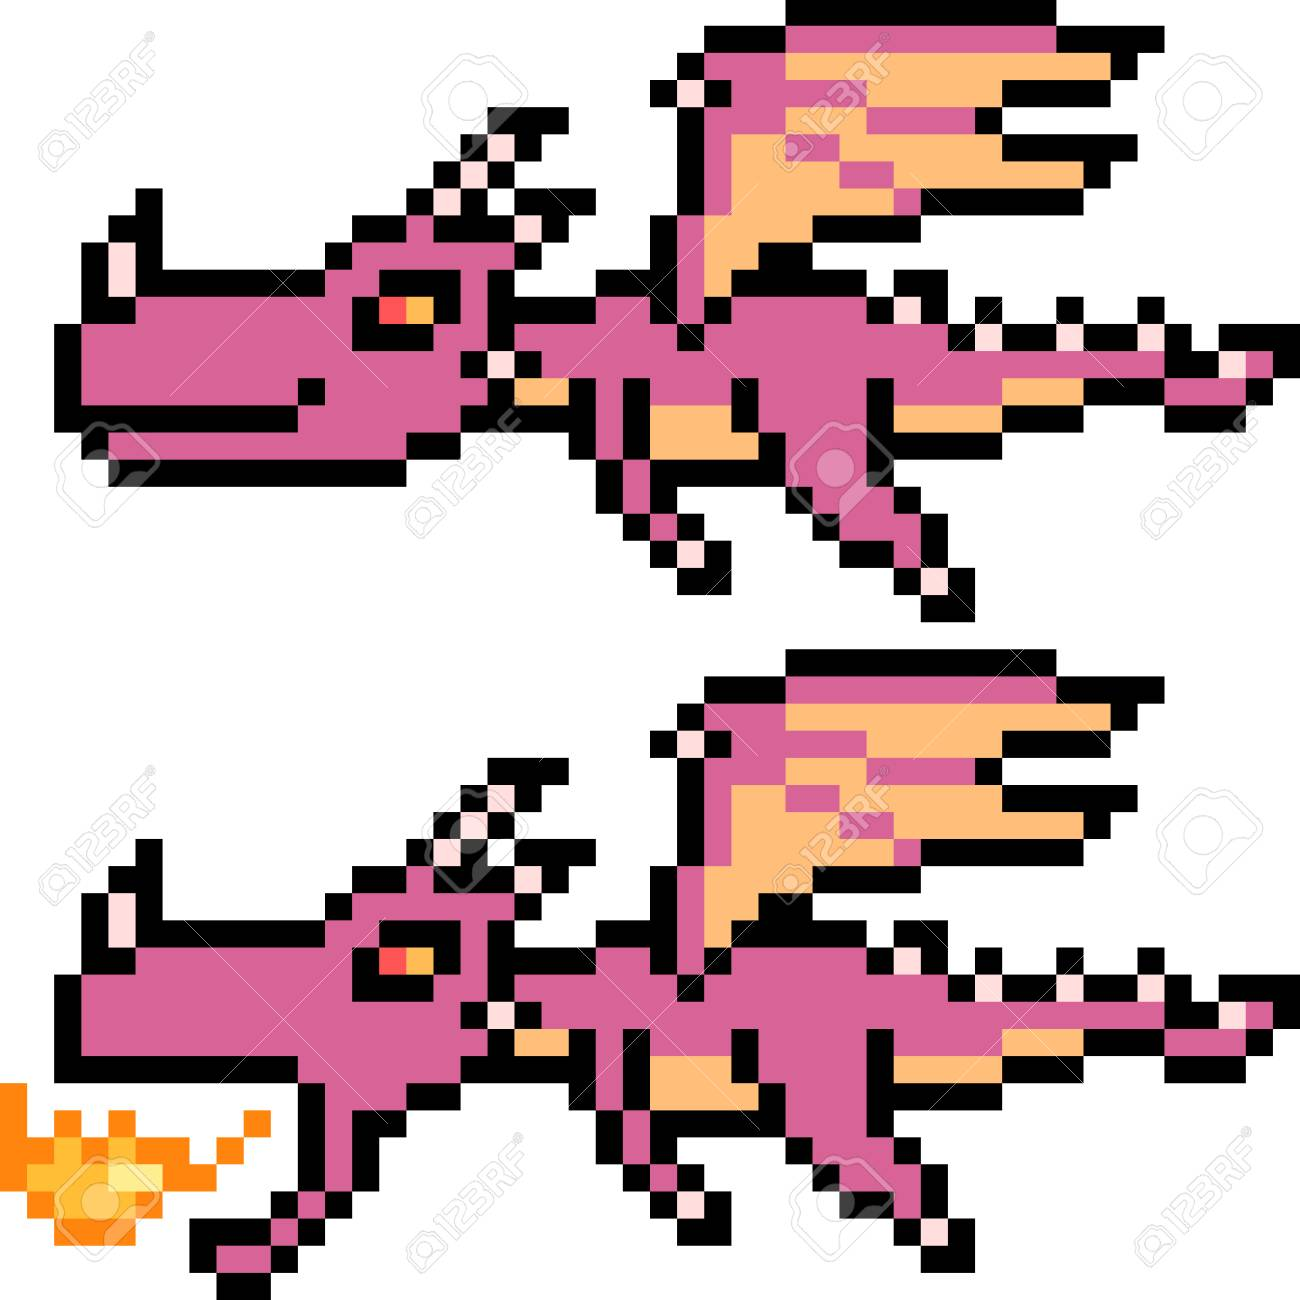 Pixel Art Illustration Of Flying Dragons Royalty Free Cliparts Vectors And Stock Illustration Image 88621199